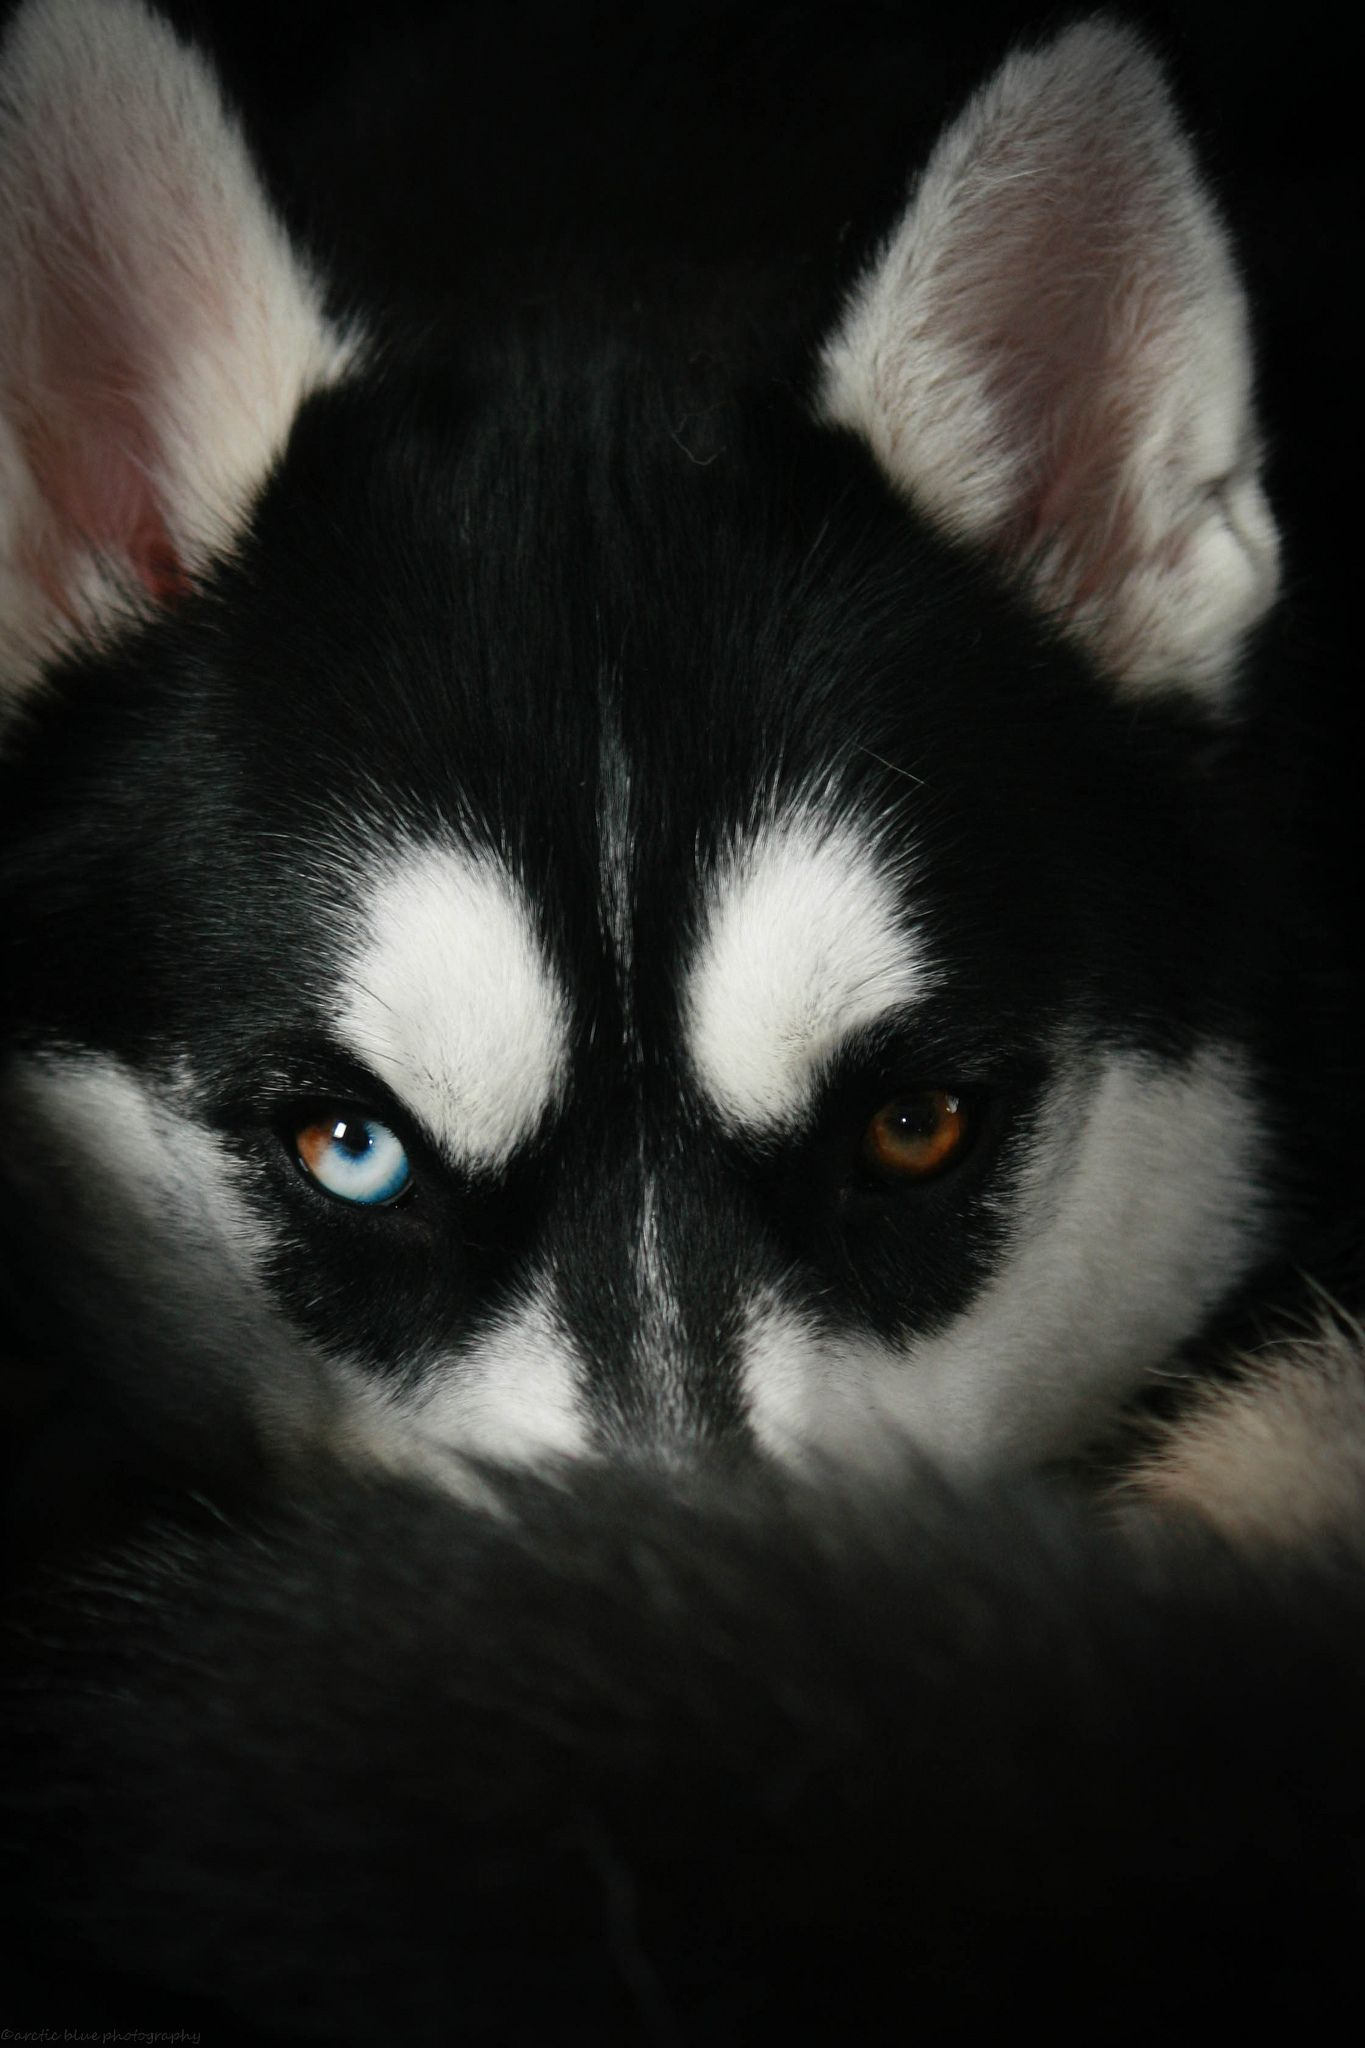 Everyone Has Wanted To See A Shot Of Ares Eyes So Here You Go Completely Natural No Enhancements His Eyes Are Just Gorgeous An Dogs Cute Animals Animals